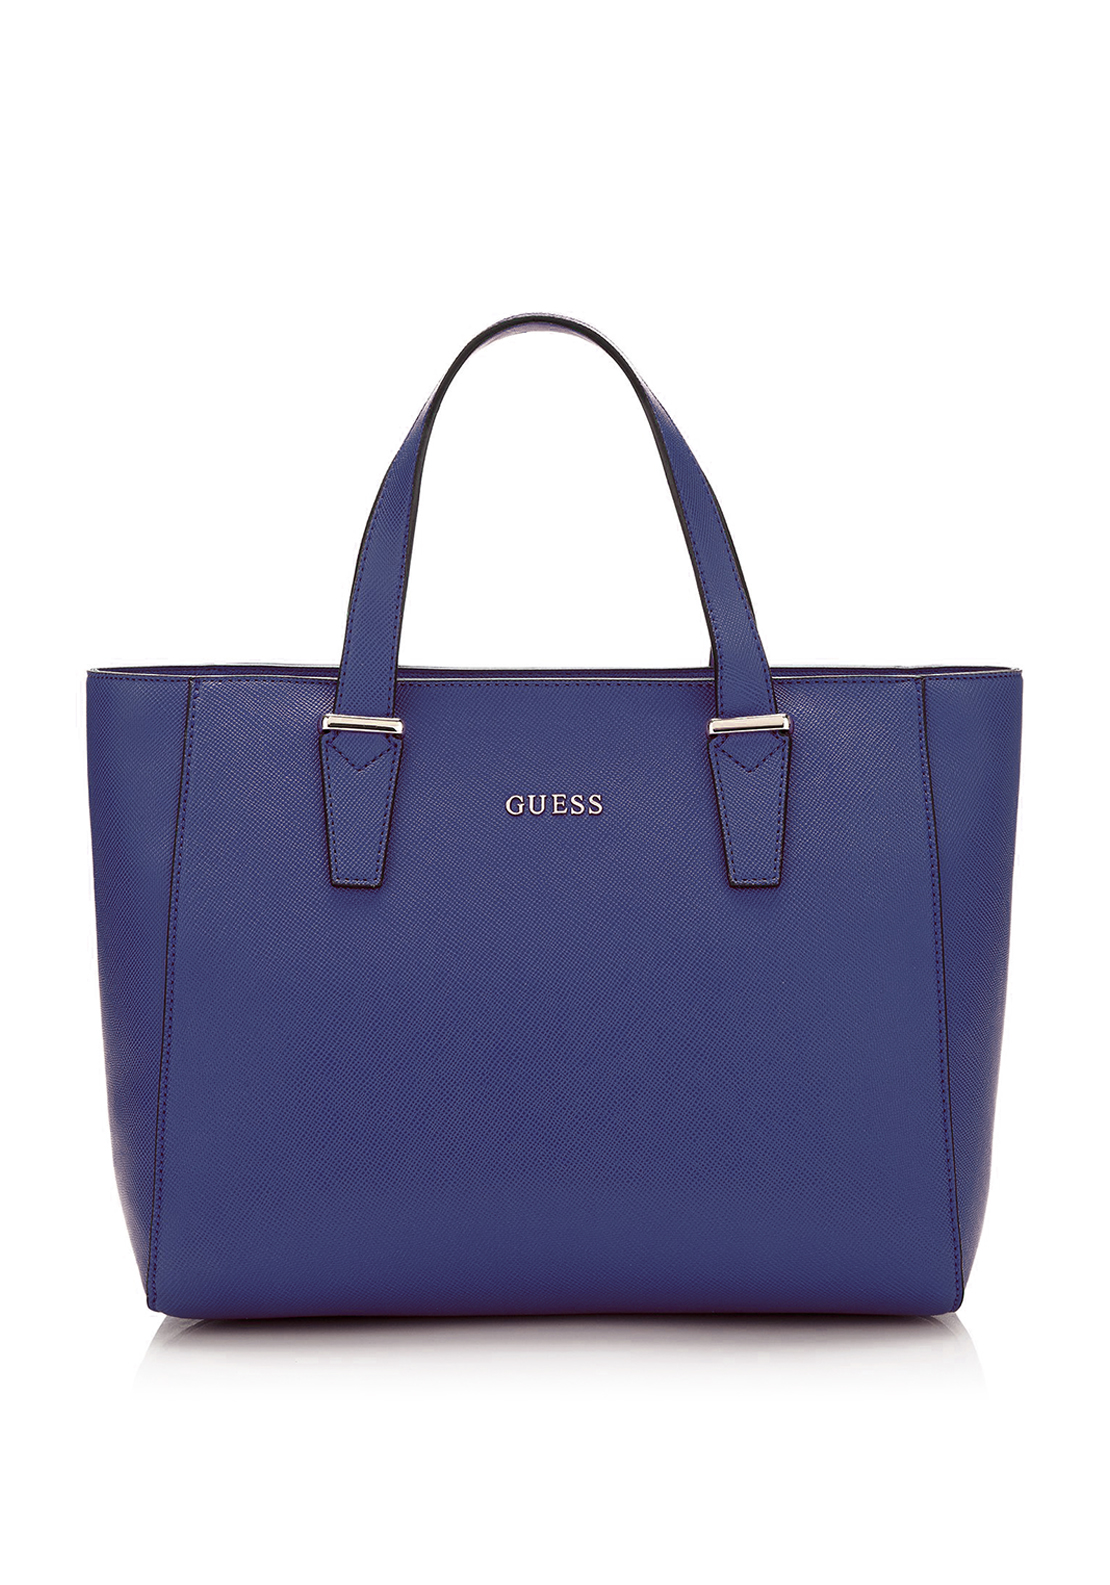 Guess Aria Satchel, Navy